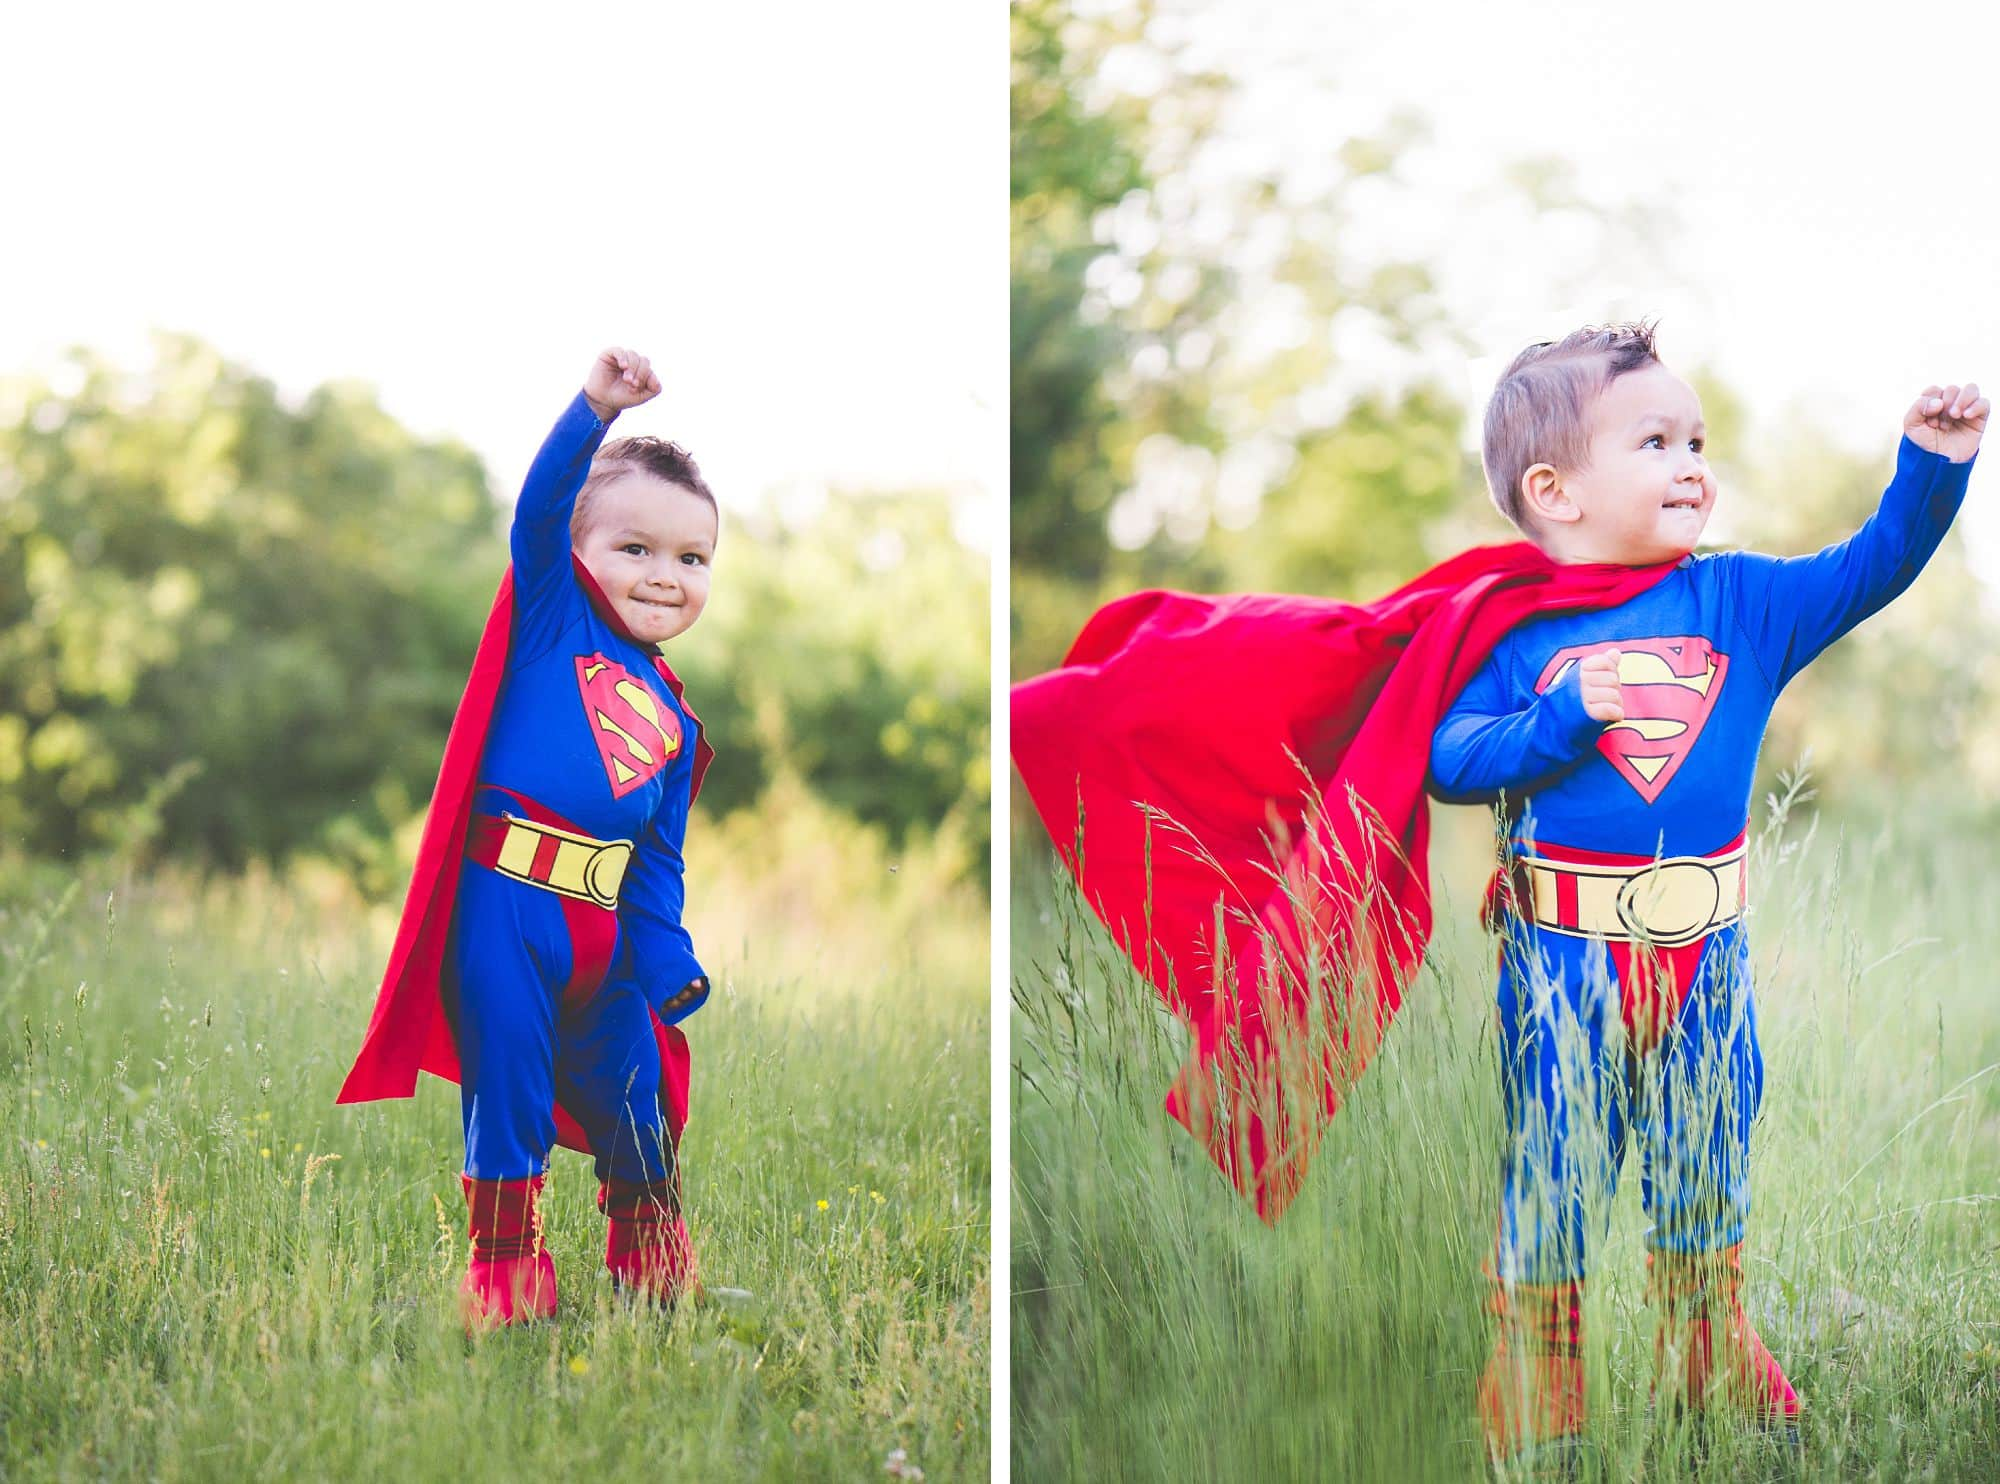 Toddler in superman costume looks ready to take off from grassy meadow